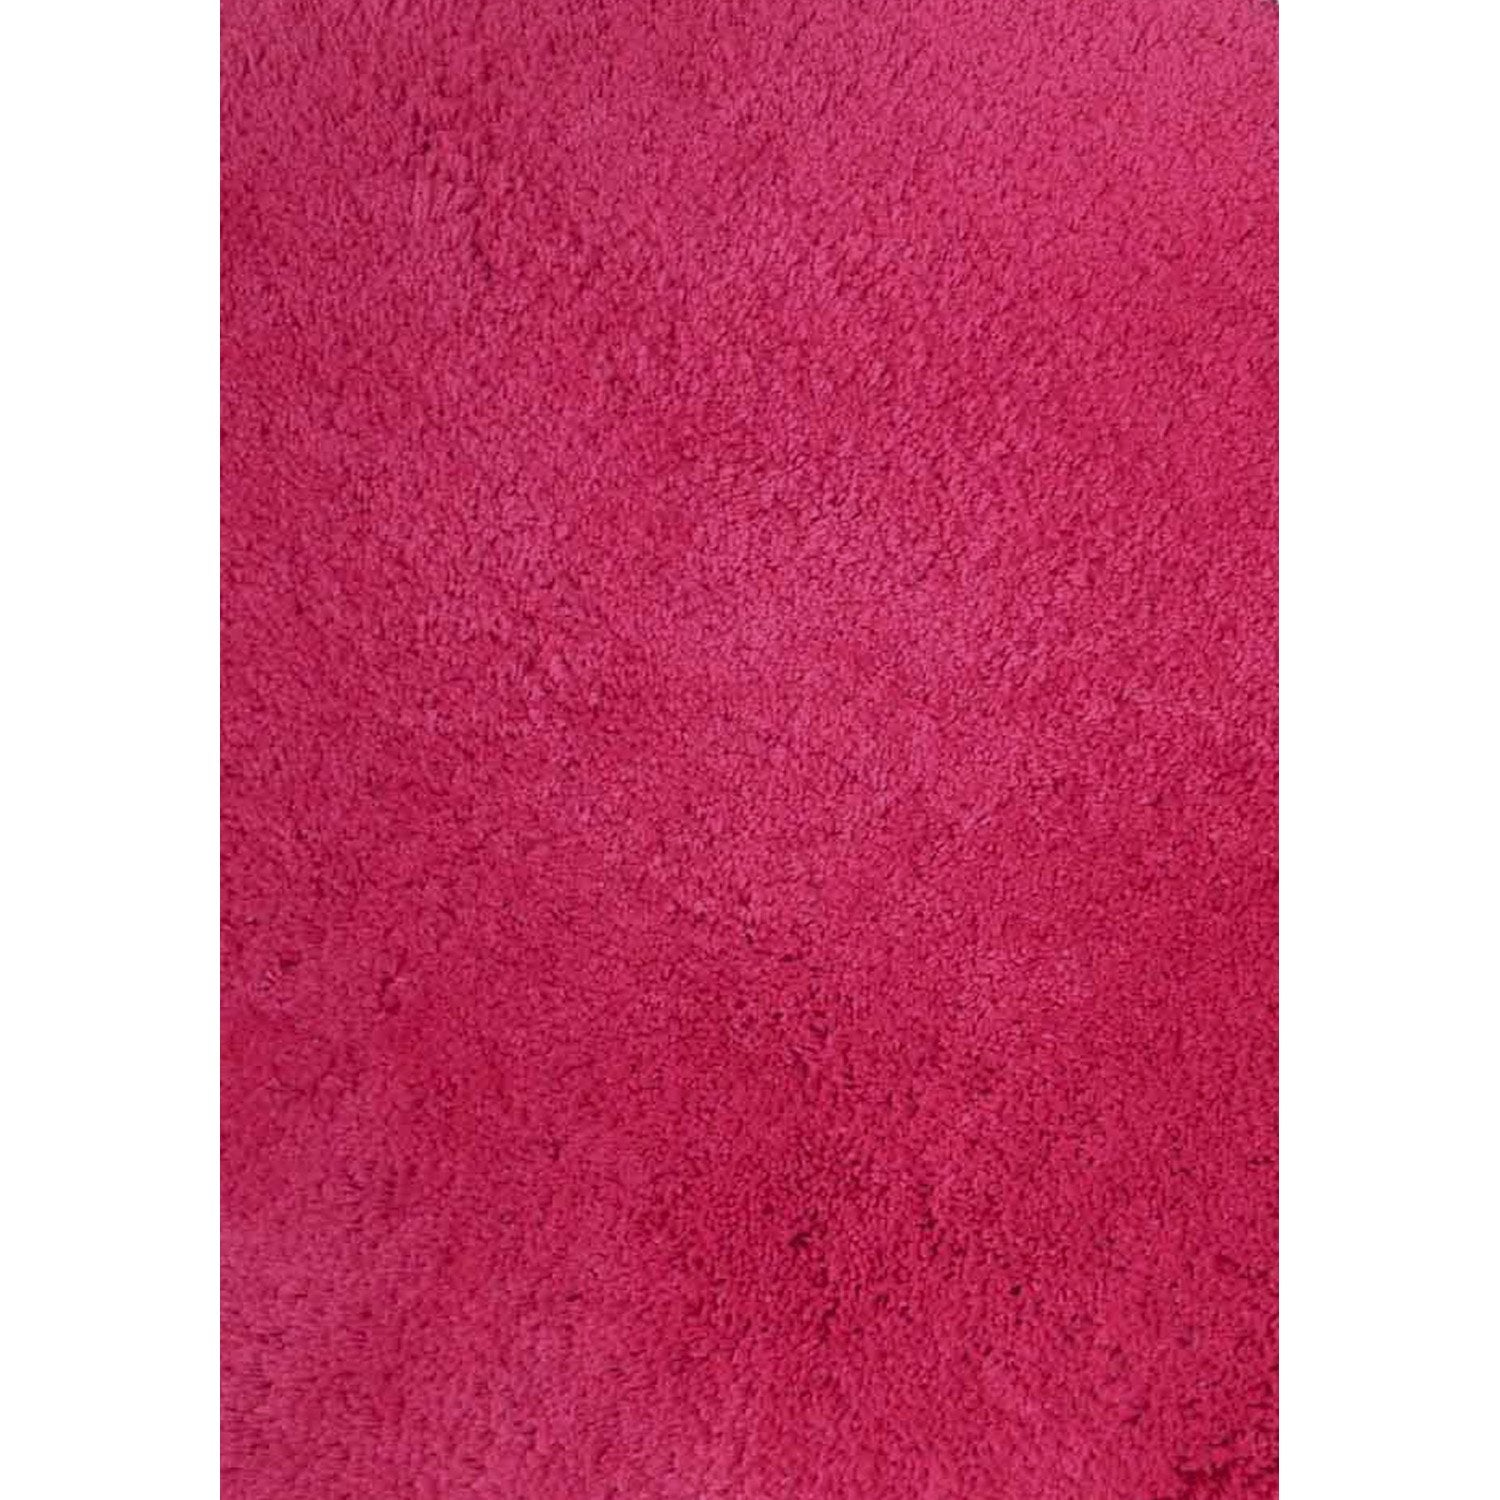 tapis rose shaggy agathe x cm leroy merlin. Black Bedroom Furniture Sets. Home Design Ideas